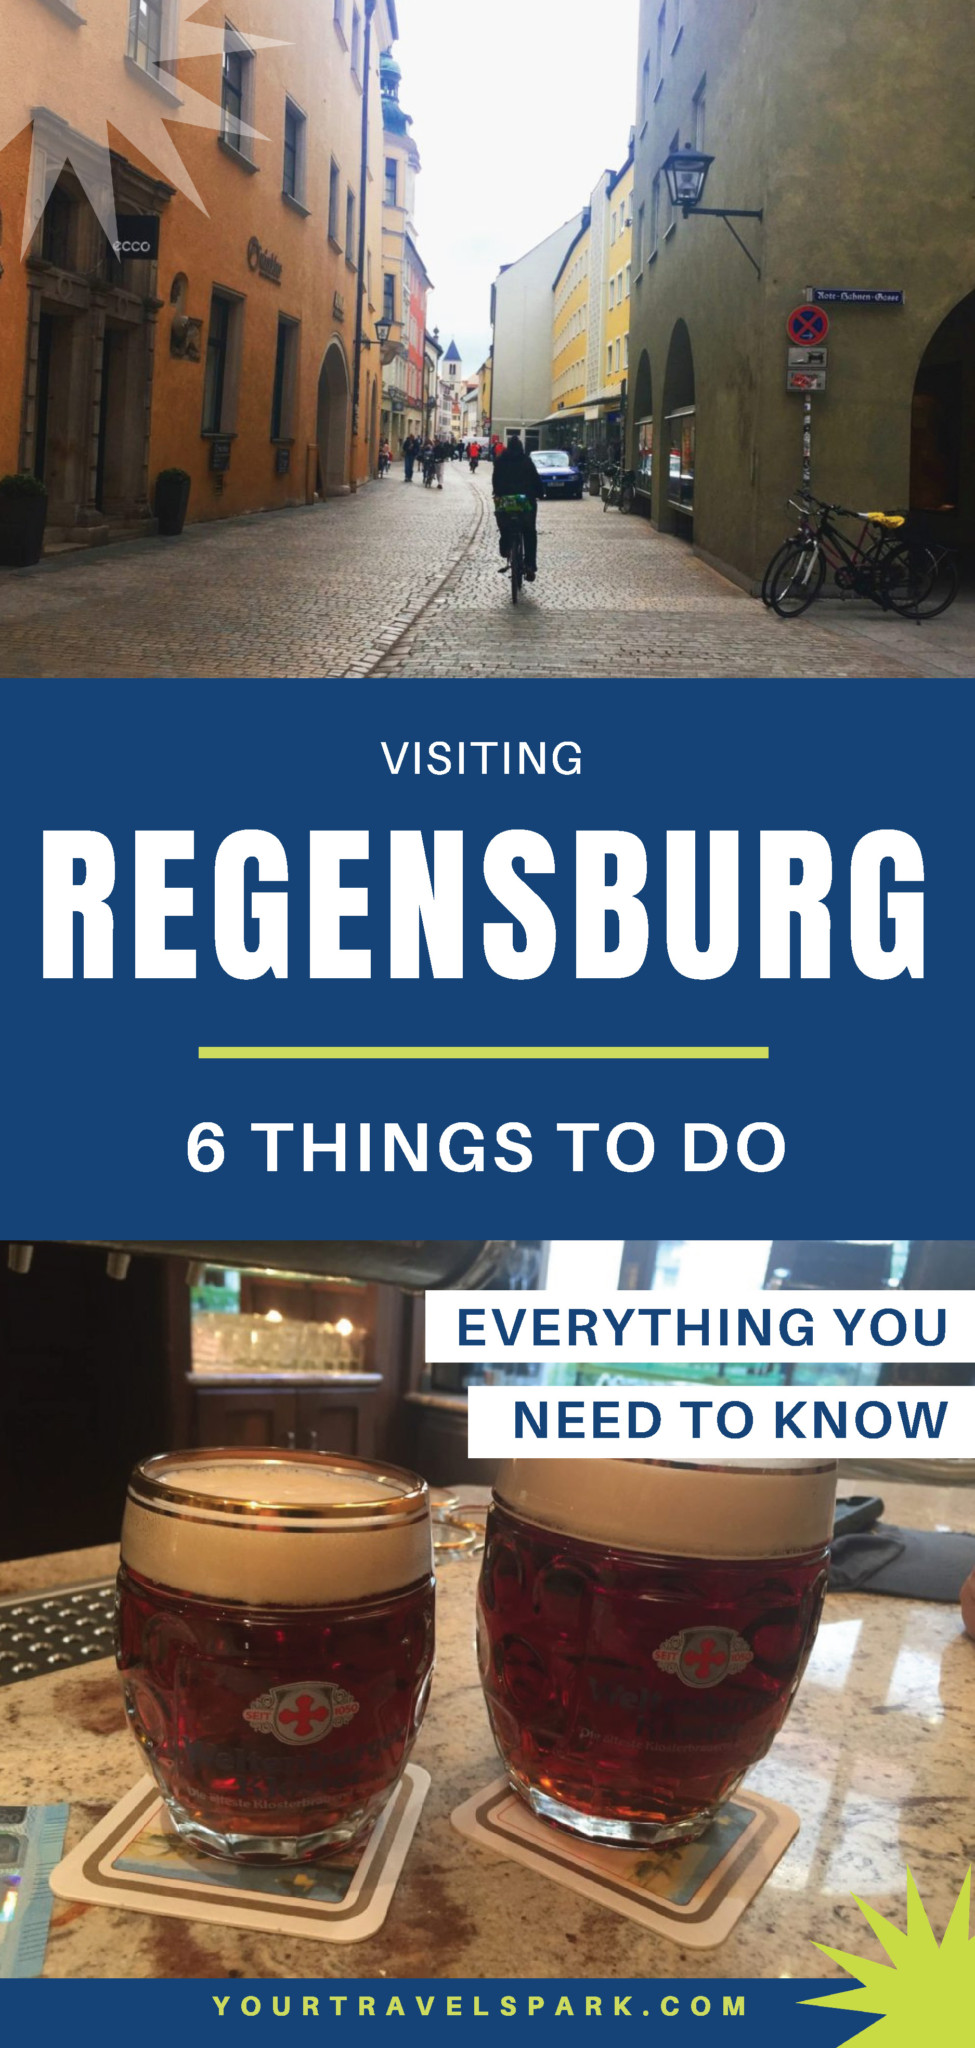 Regensburg, Germany is a beautiful destination for any European adventure. There are Roman ruins and Bavarian history. Here are our top things to do in Regensburg. #regensburg #regensburggermany #germany #bavaria